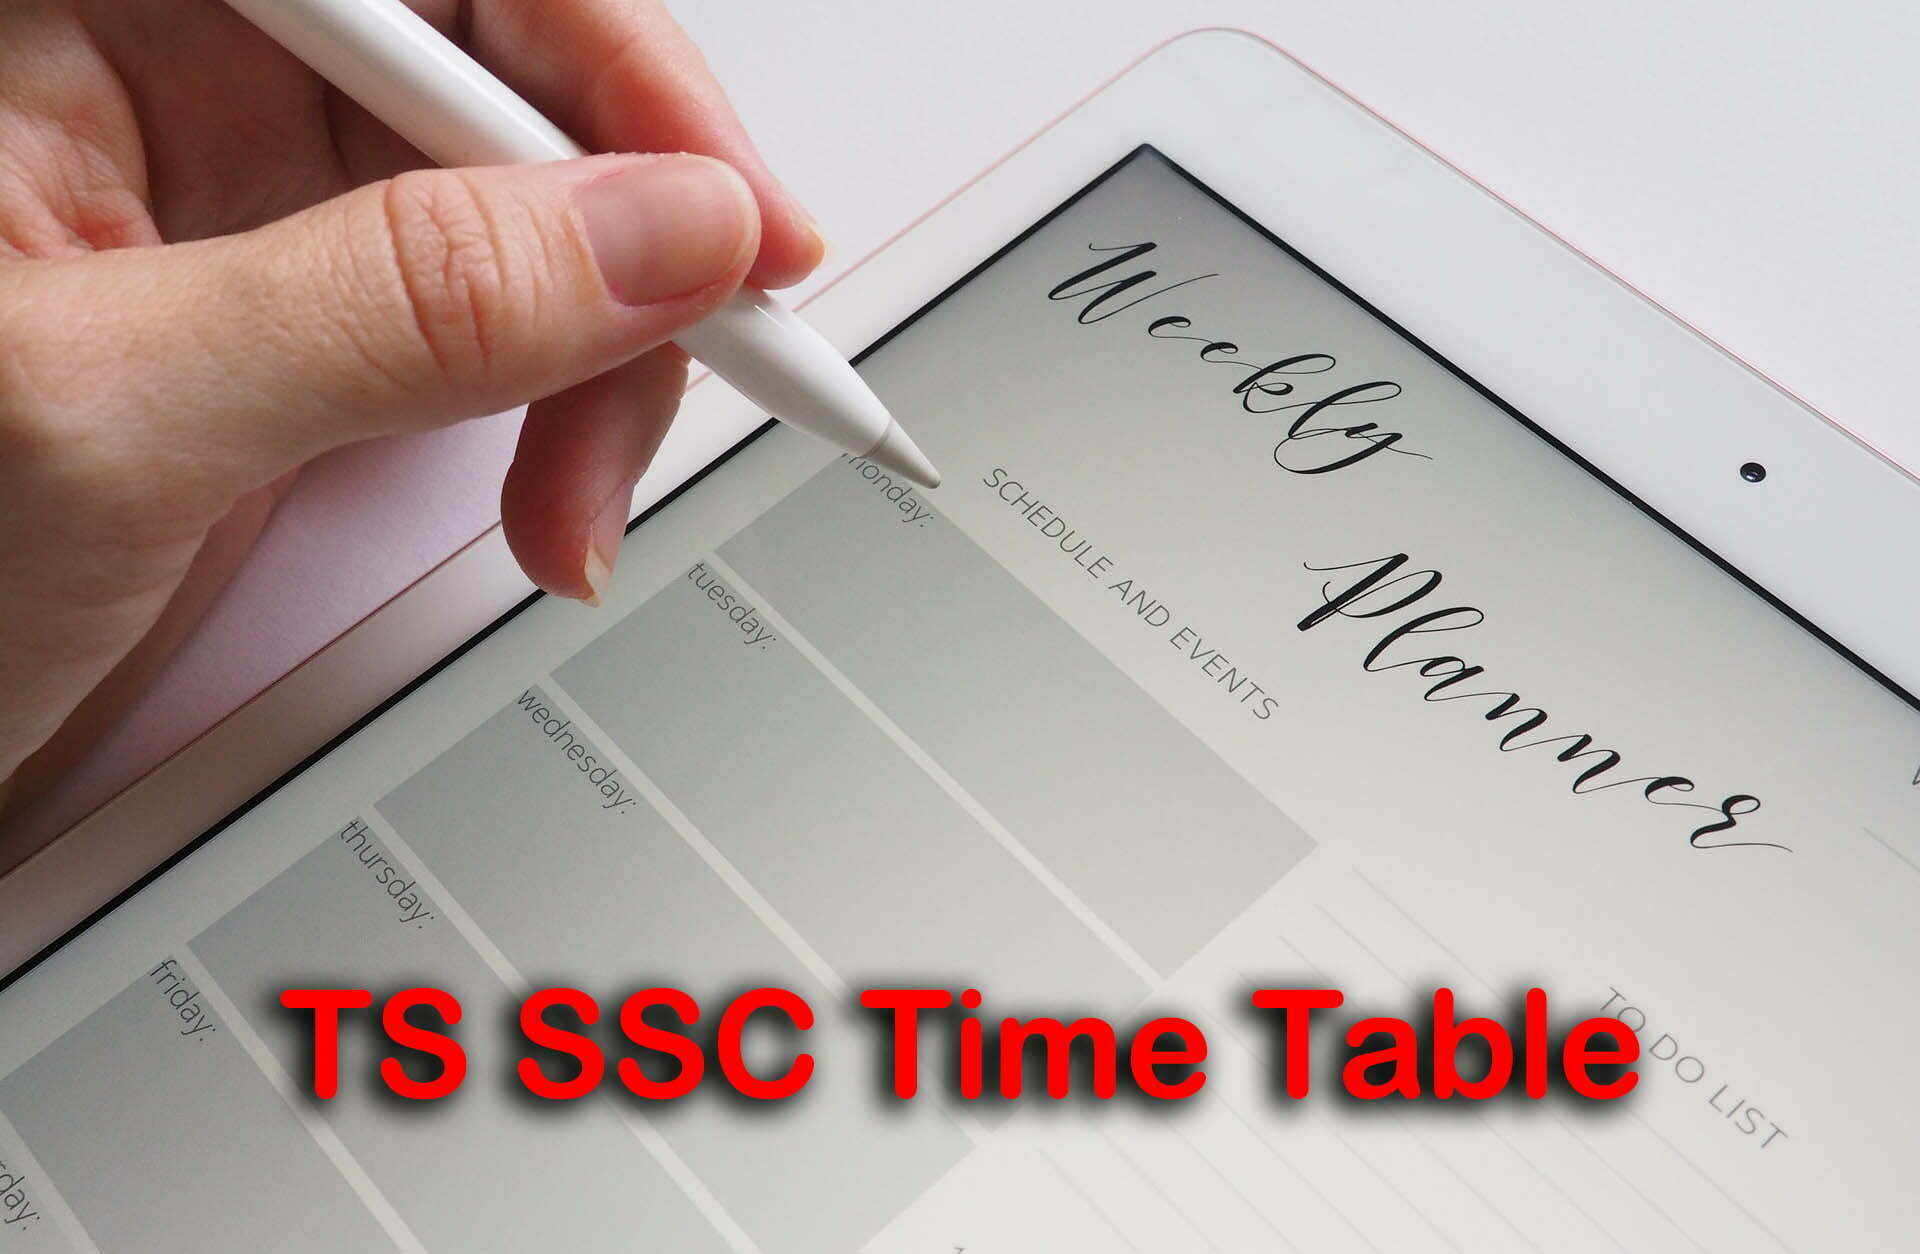 TS SSC Time Table